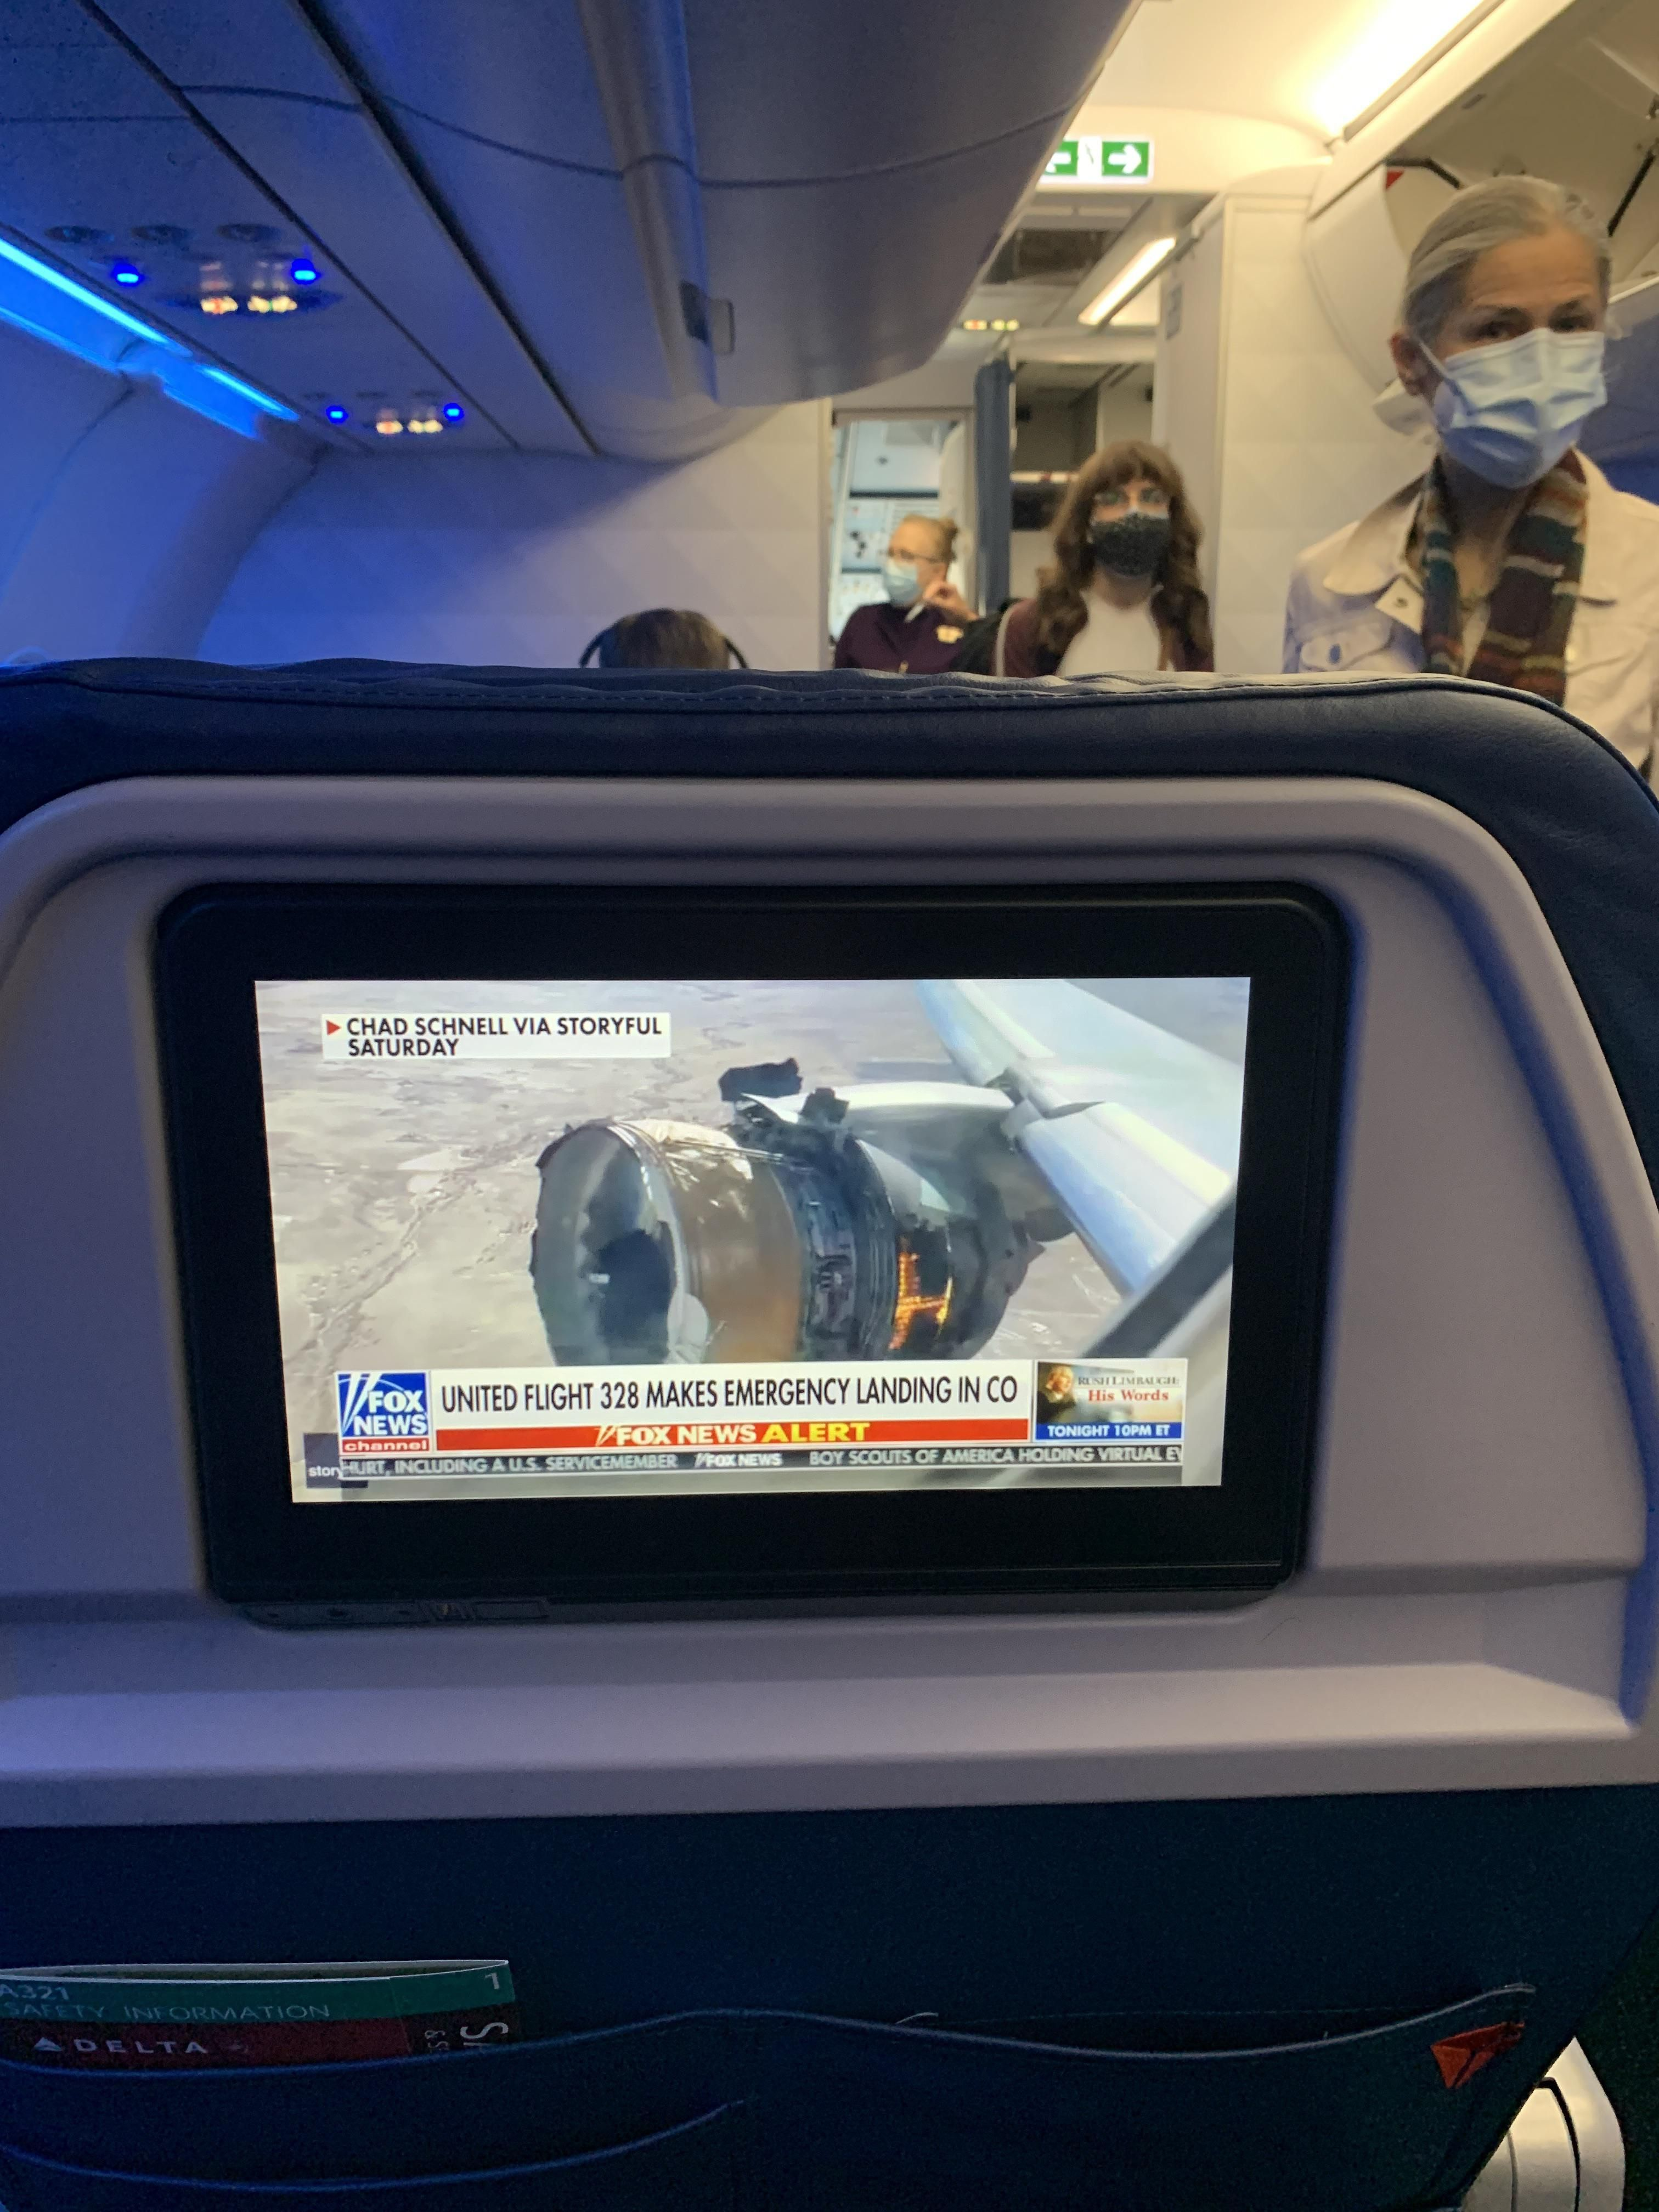 What I see on the news while boarding my flight today...